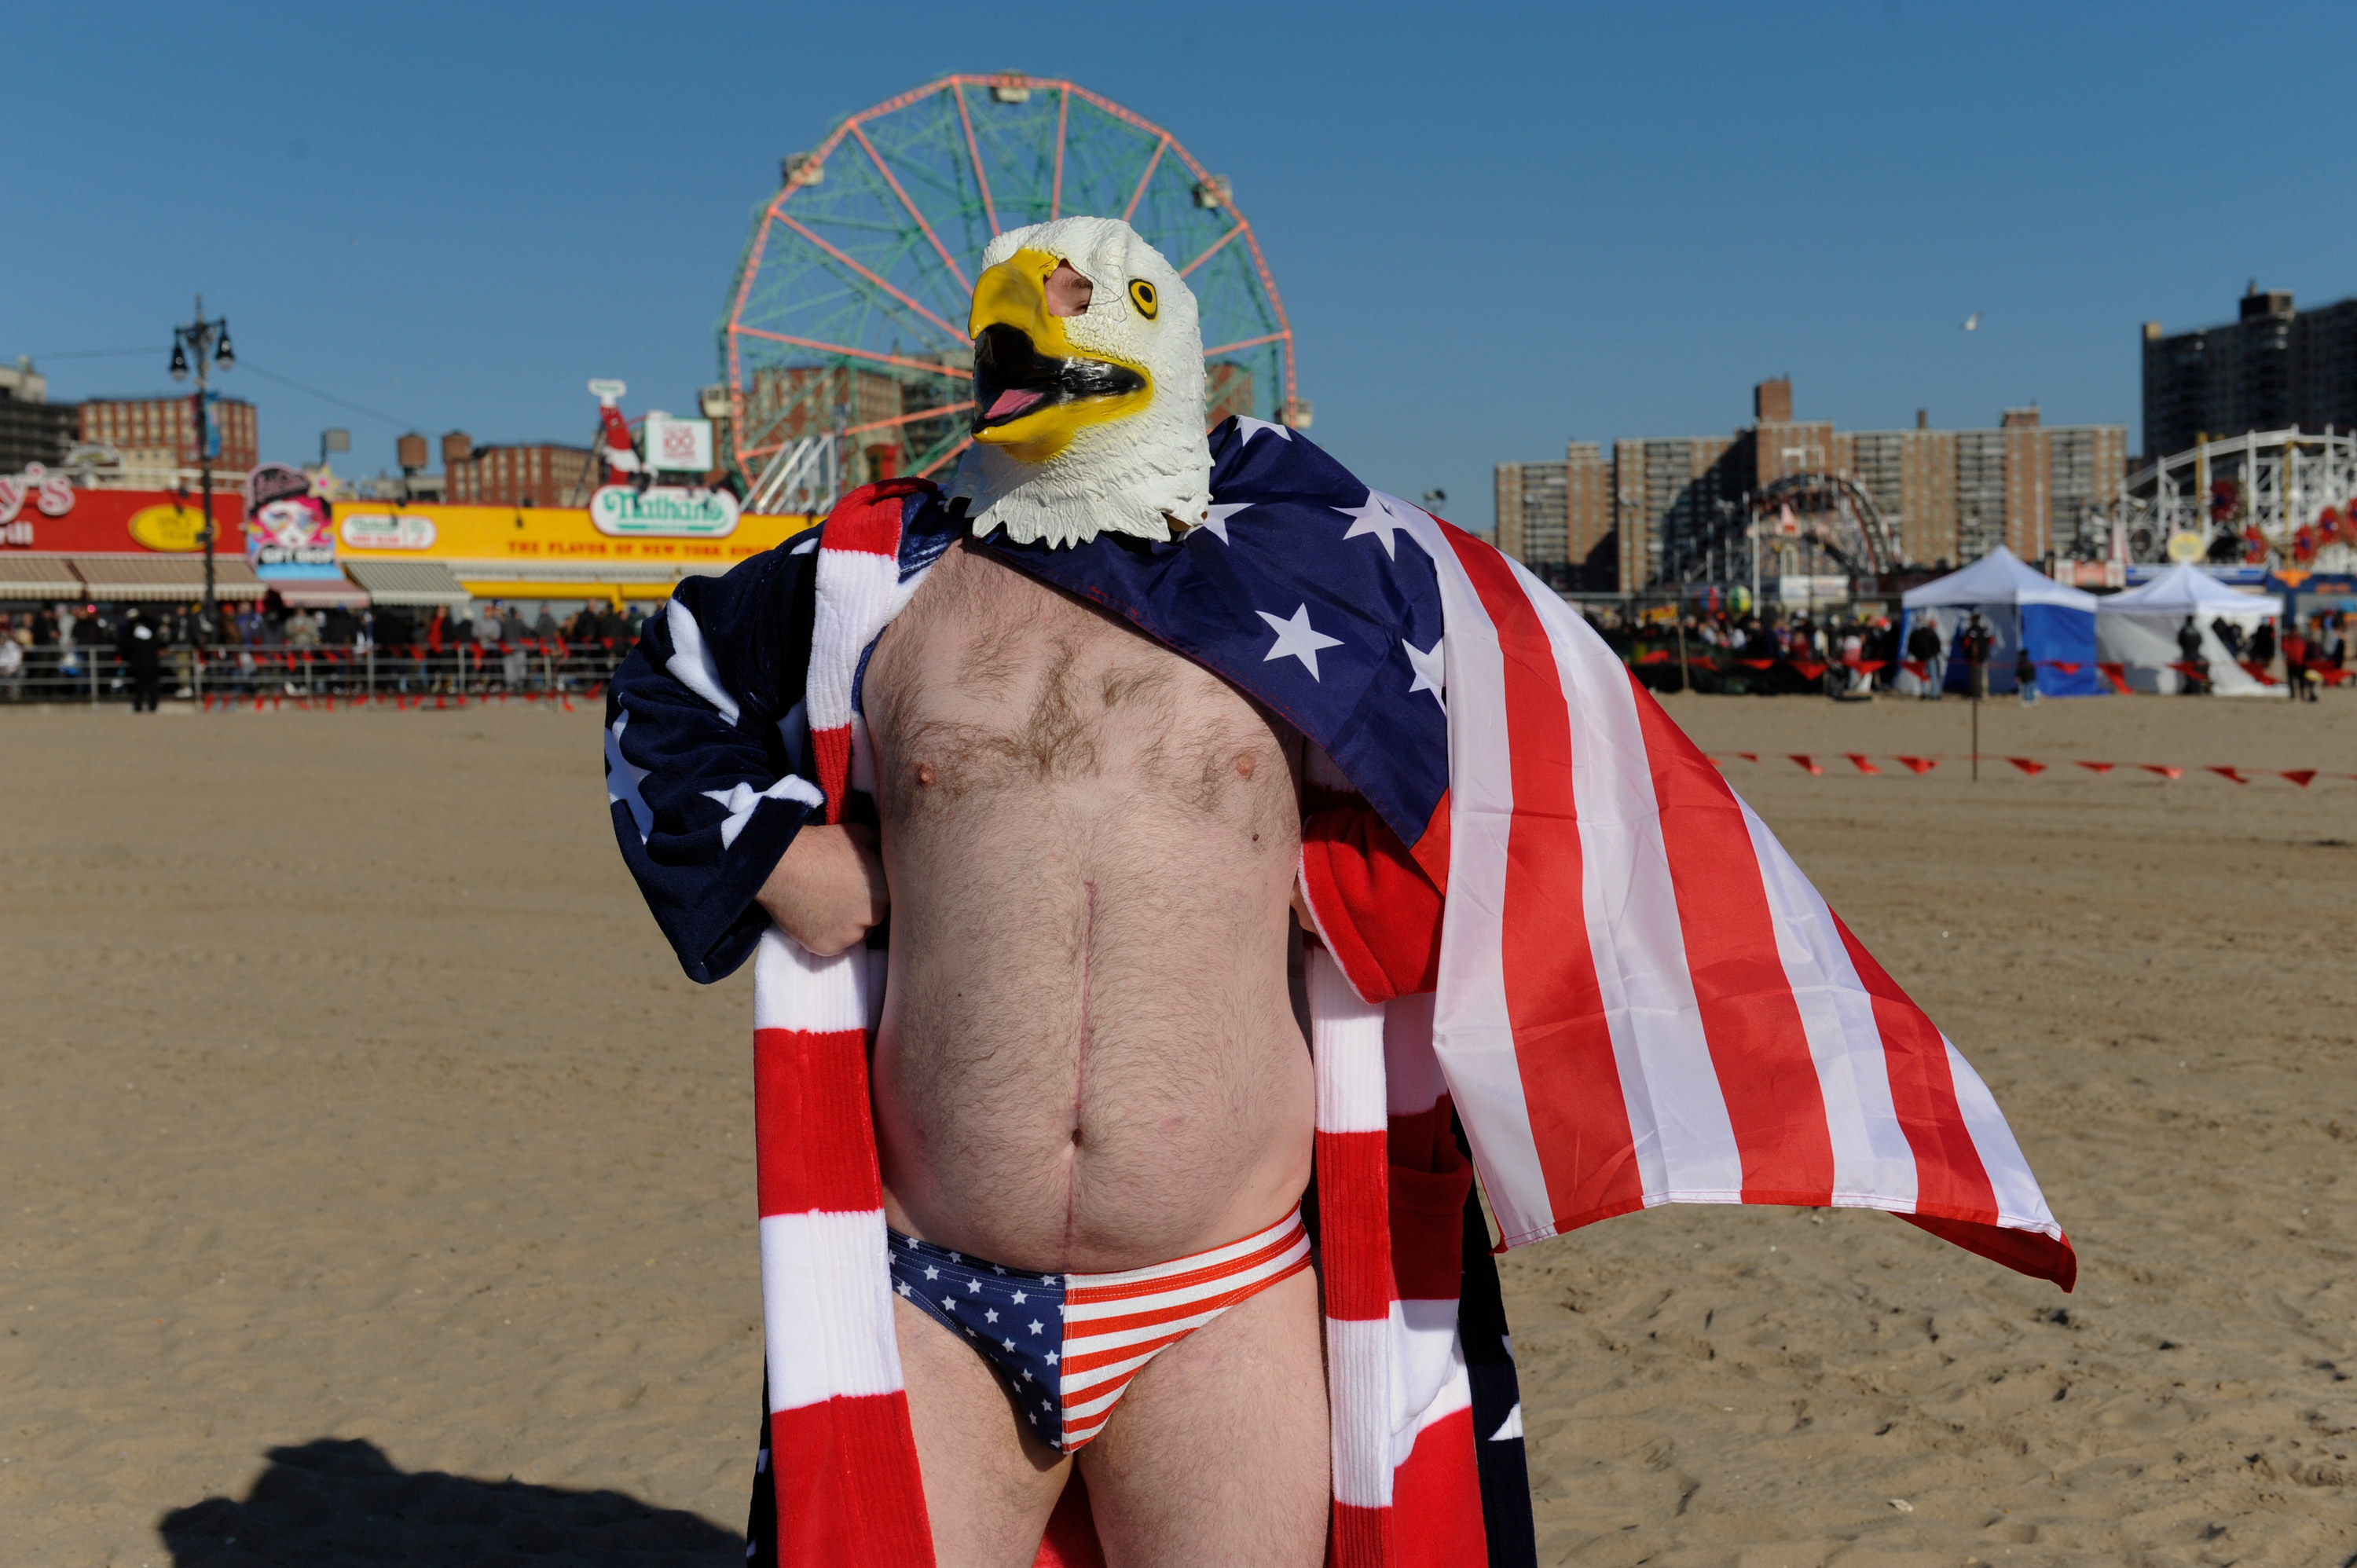 A man wearing a US flag Speedo and chicken head mask stands with a US flag draped over his shoulders